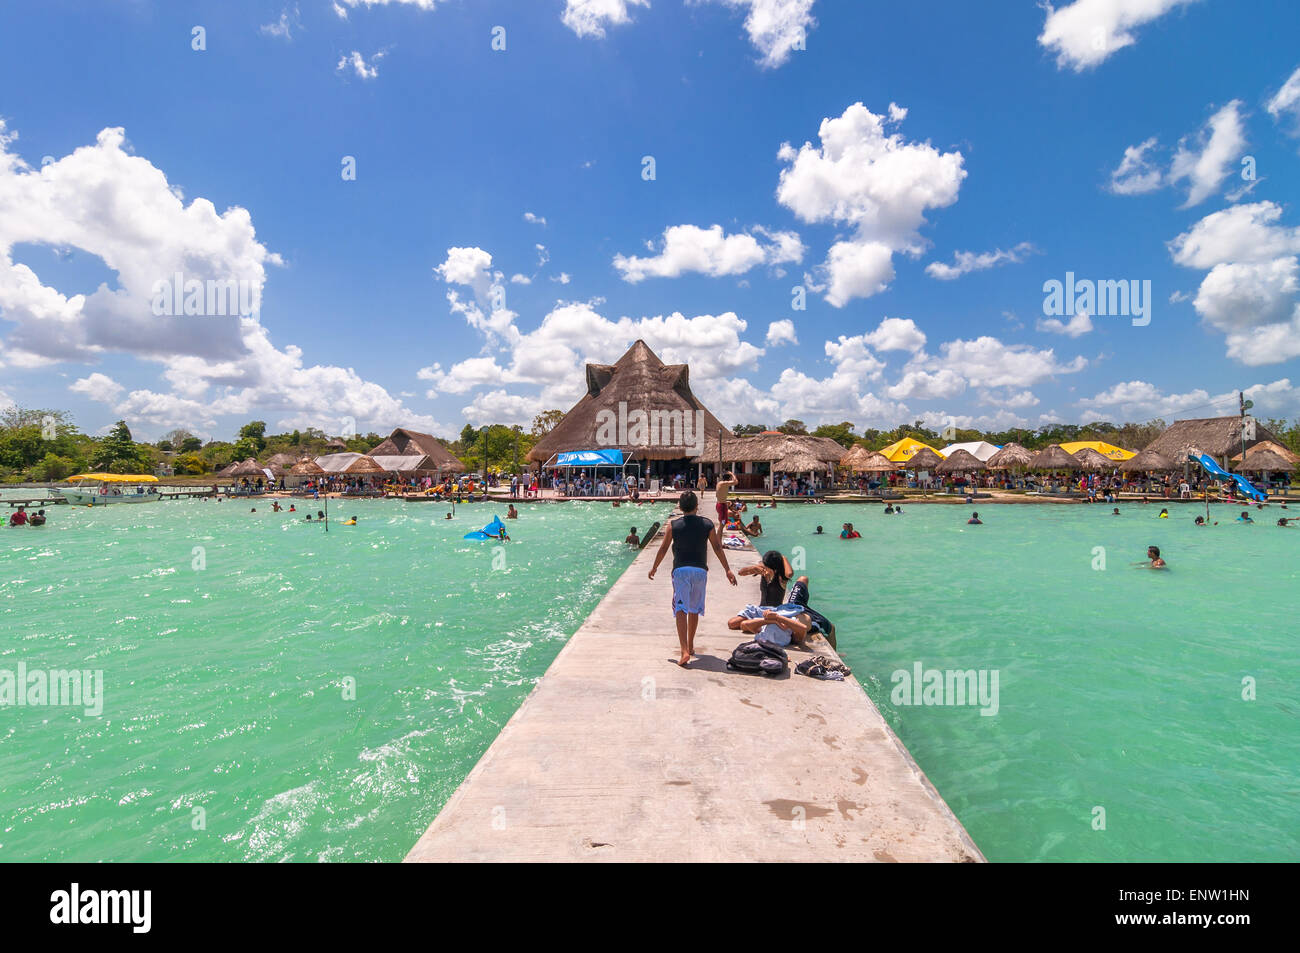 Bacalar, Mexico - April 26, 2014: locals and tourists enjoy turquoise water at Balneario magico in Bacalar lagoon, - Stock Image